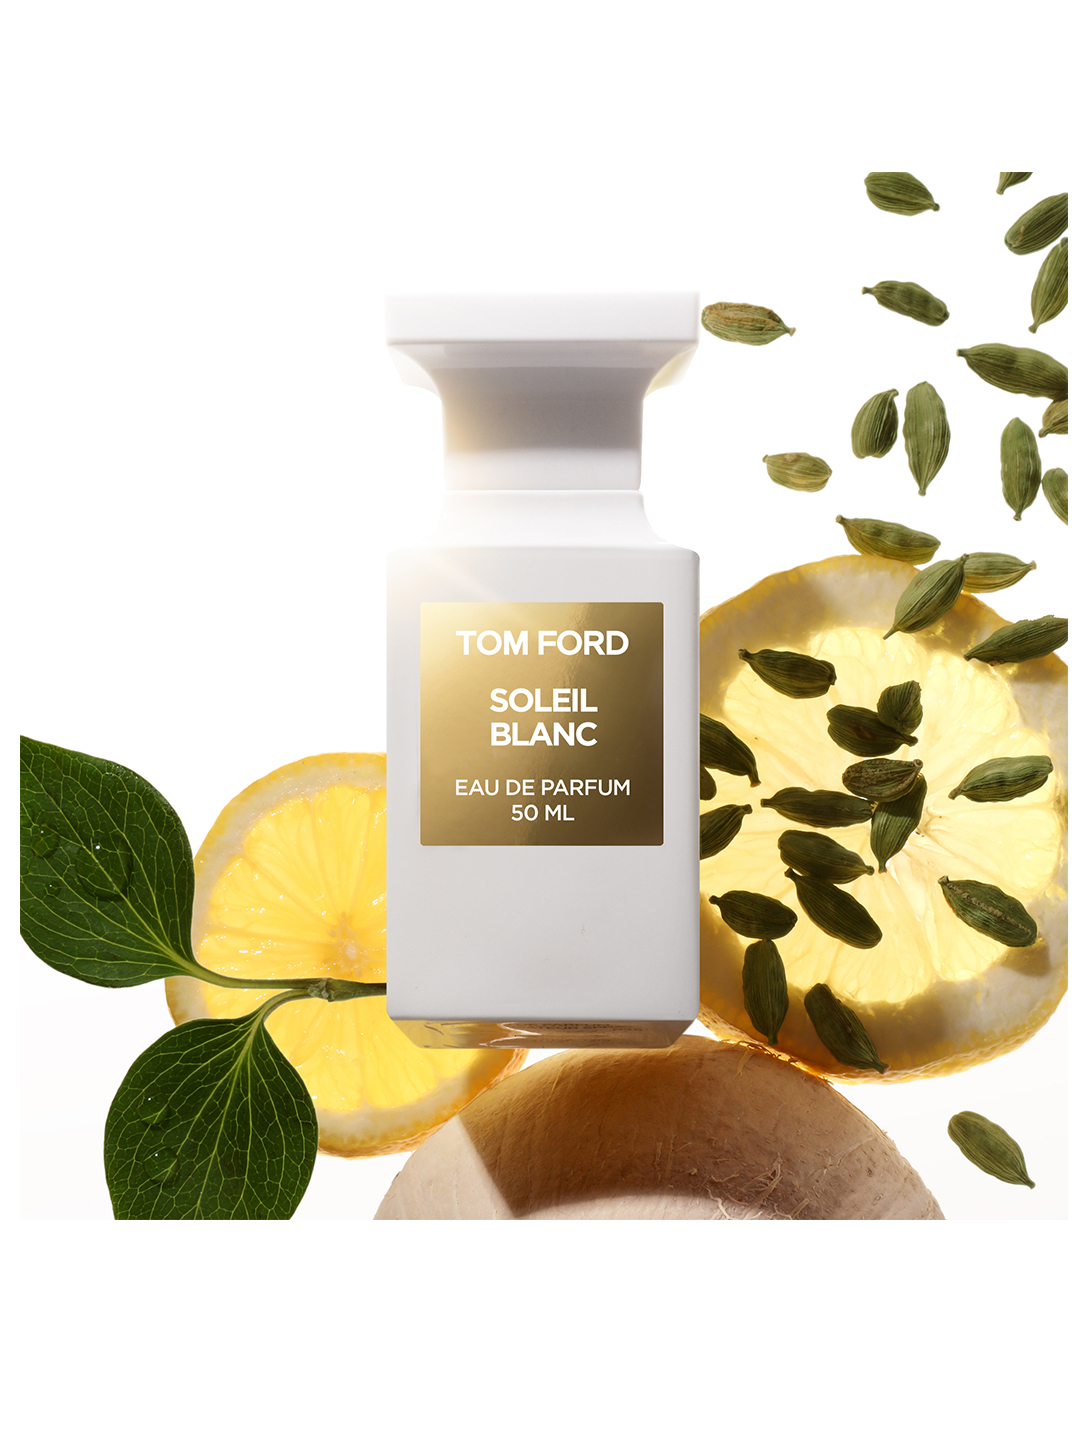 TOM FORD Soleil Blanc All Over Body Spray Beauty